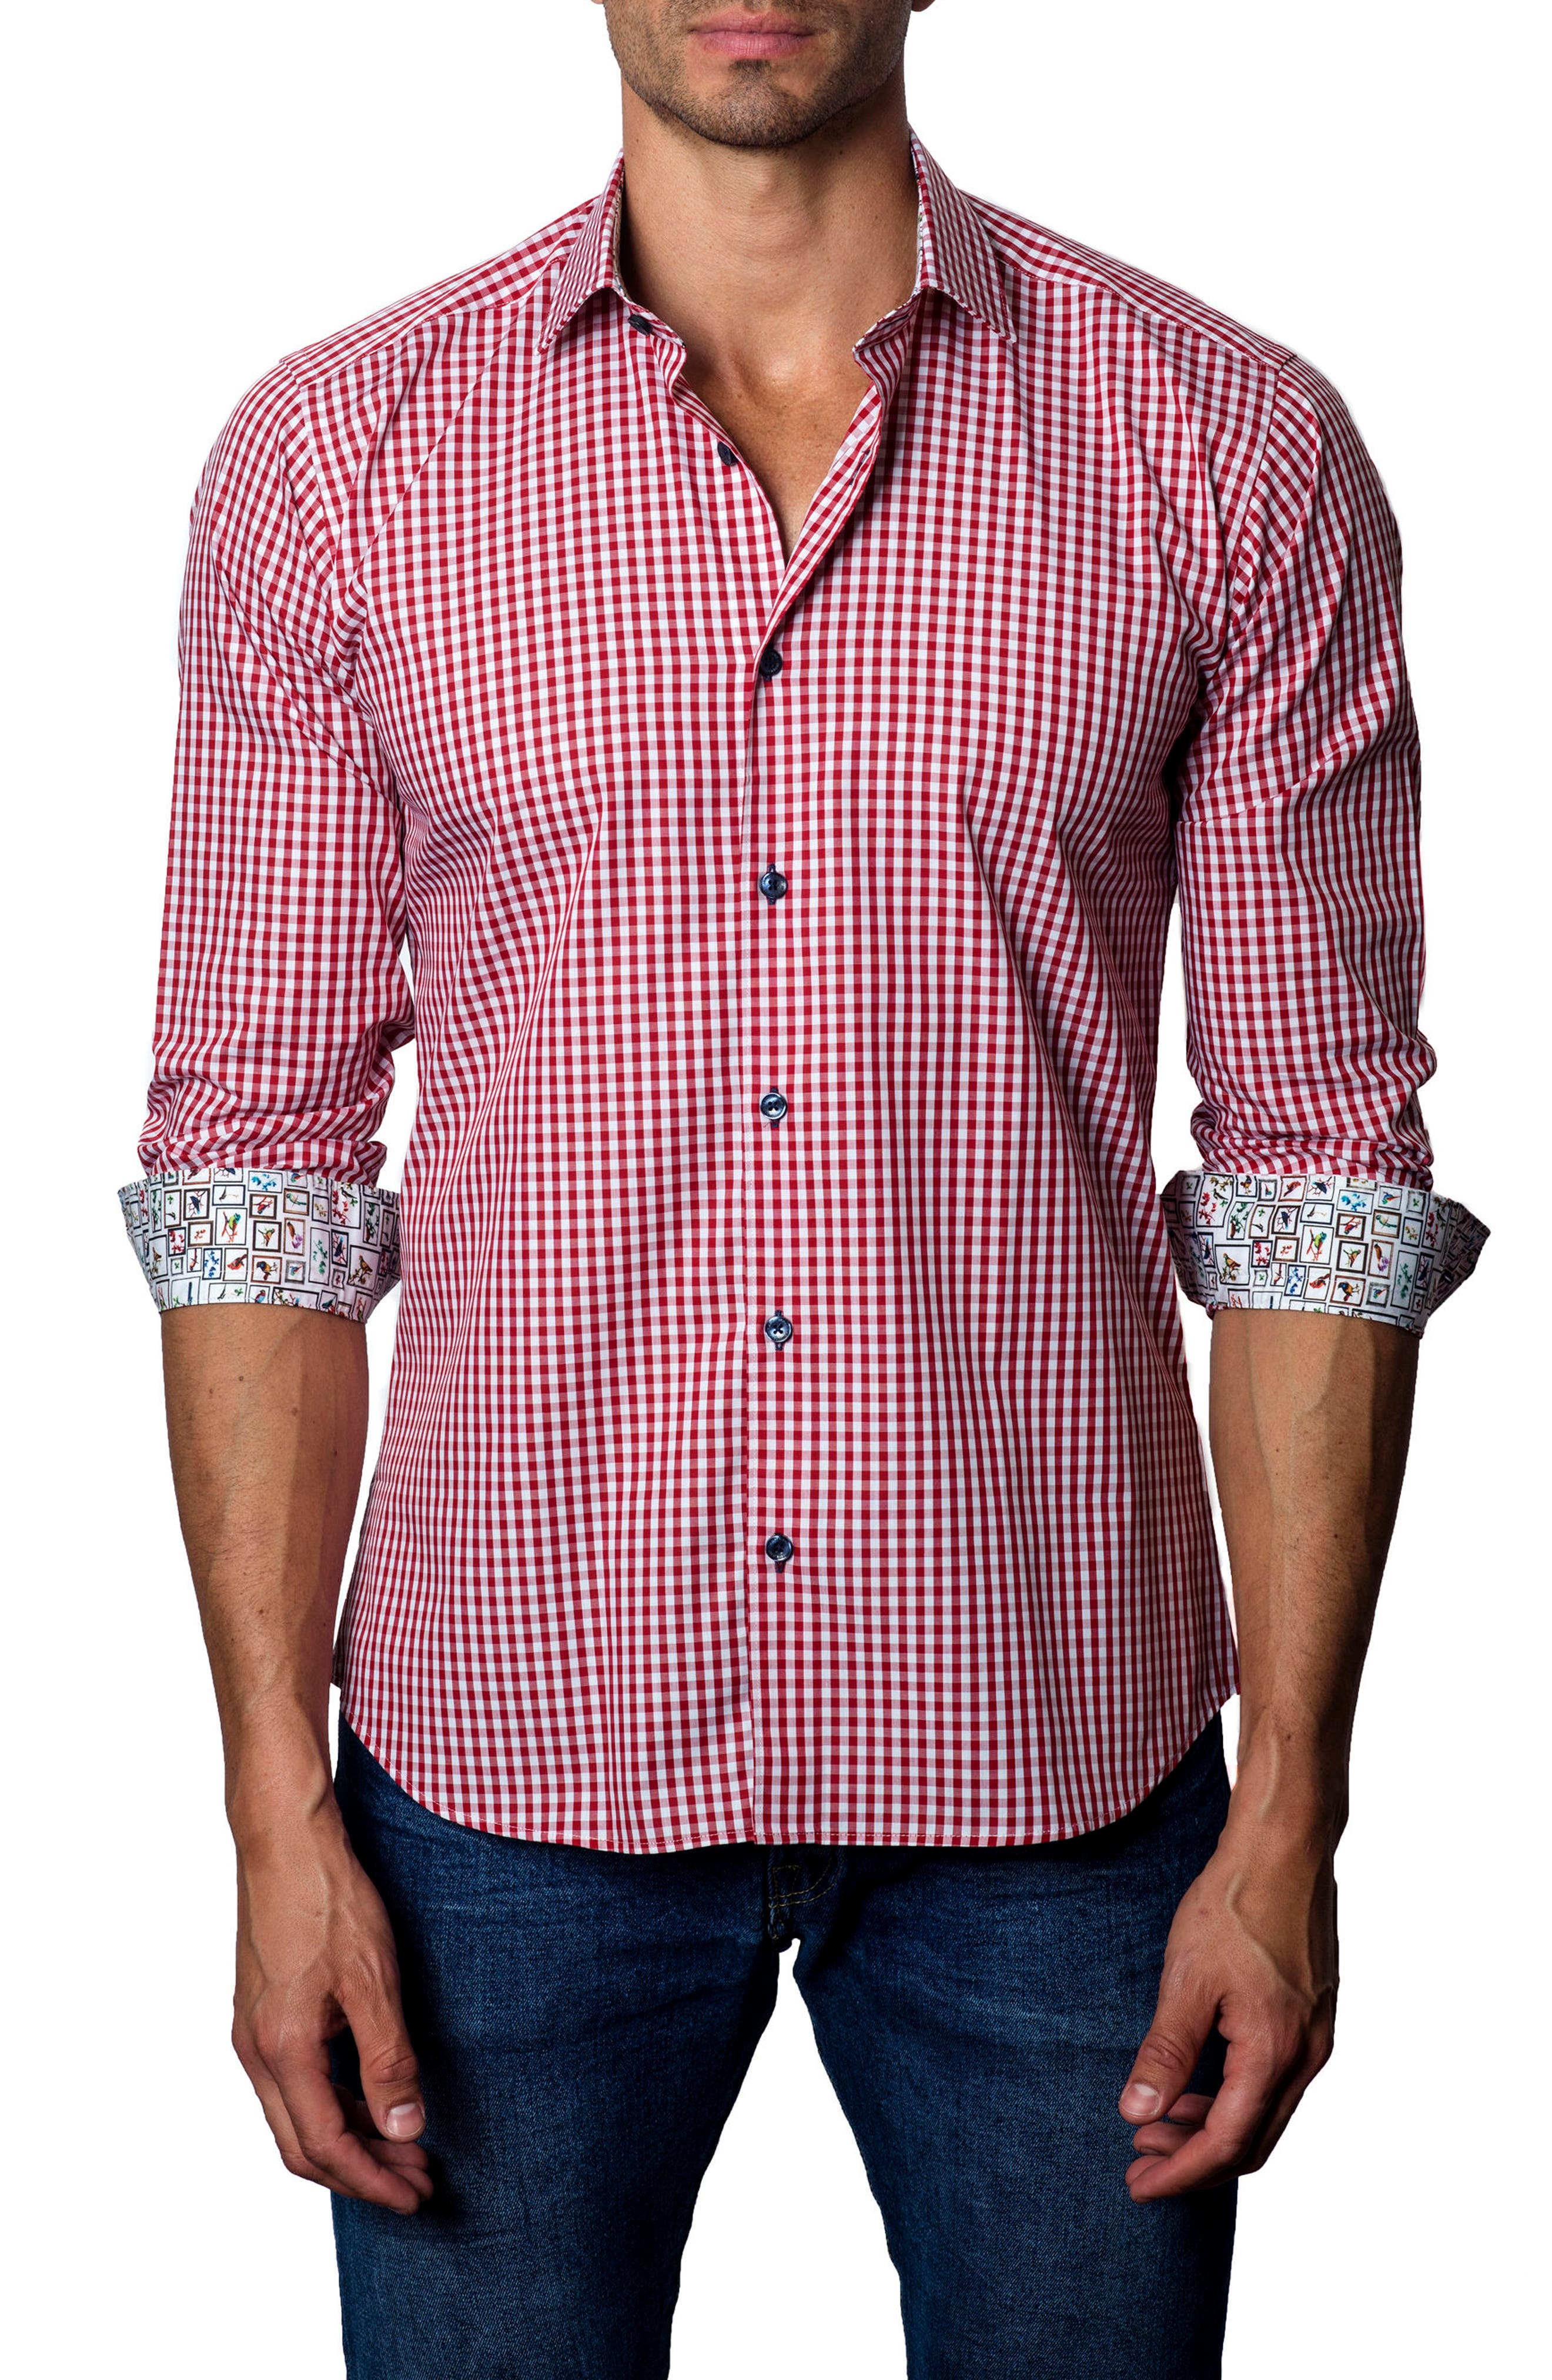 Alternate Image 1 Selected - Jared Lang Gingham Check Sport Shirt